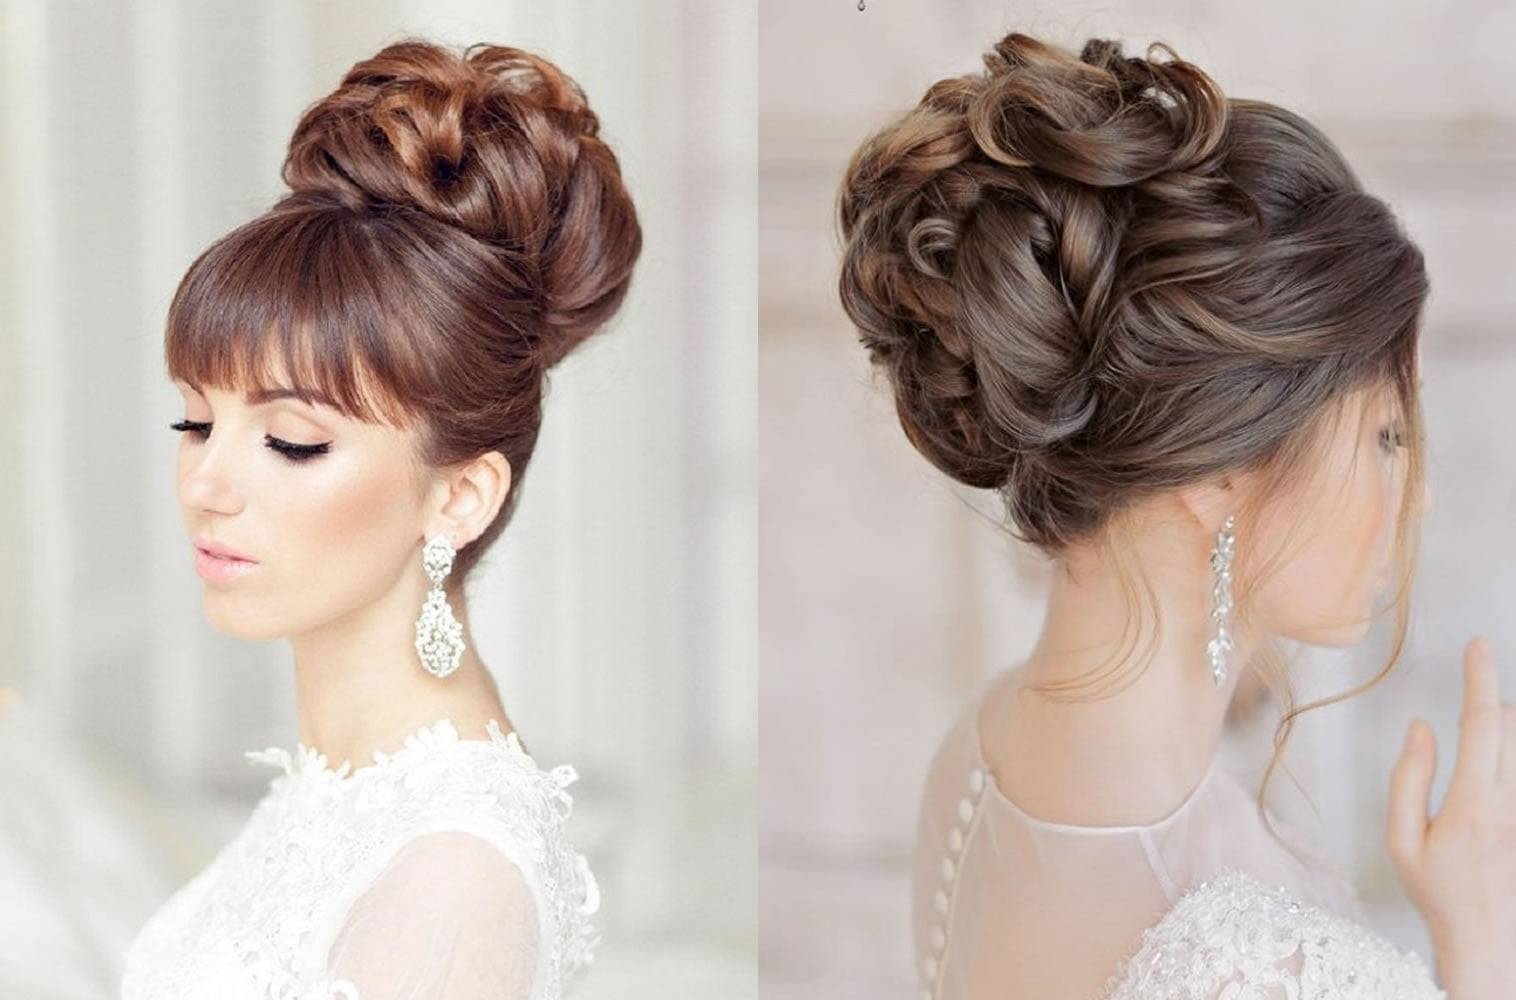 10 Beautiful Updo Hairstyles For Weddings 2019: Wedding Hairstyles Down 2019